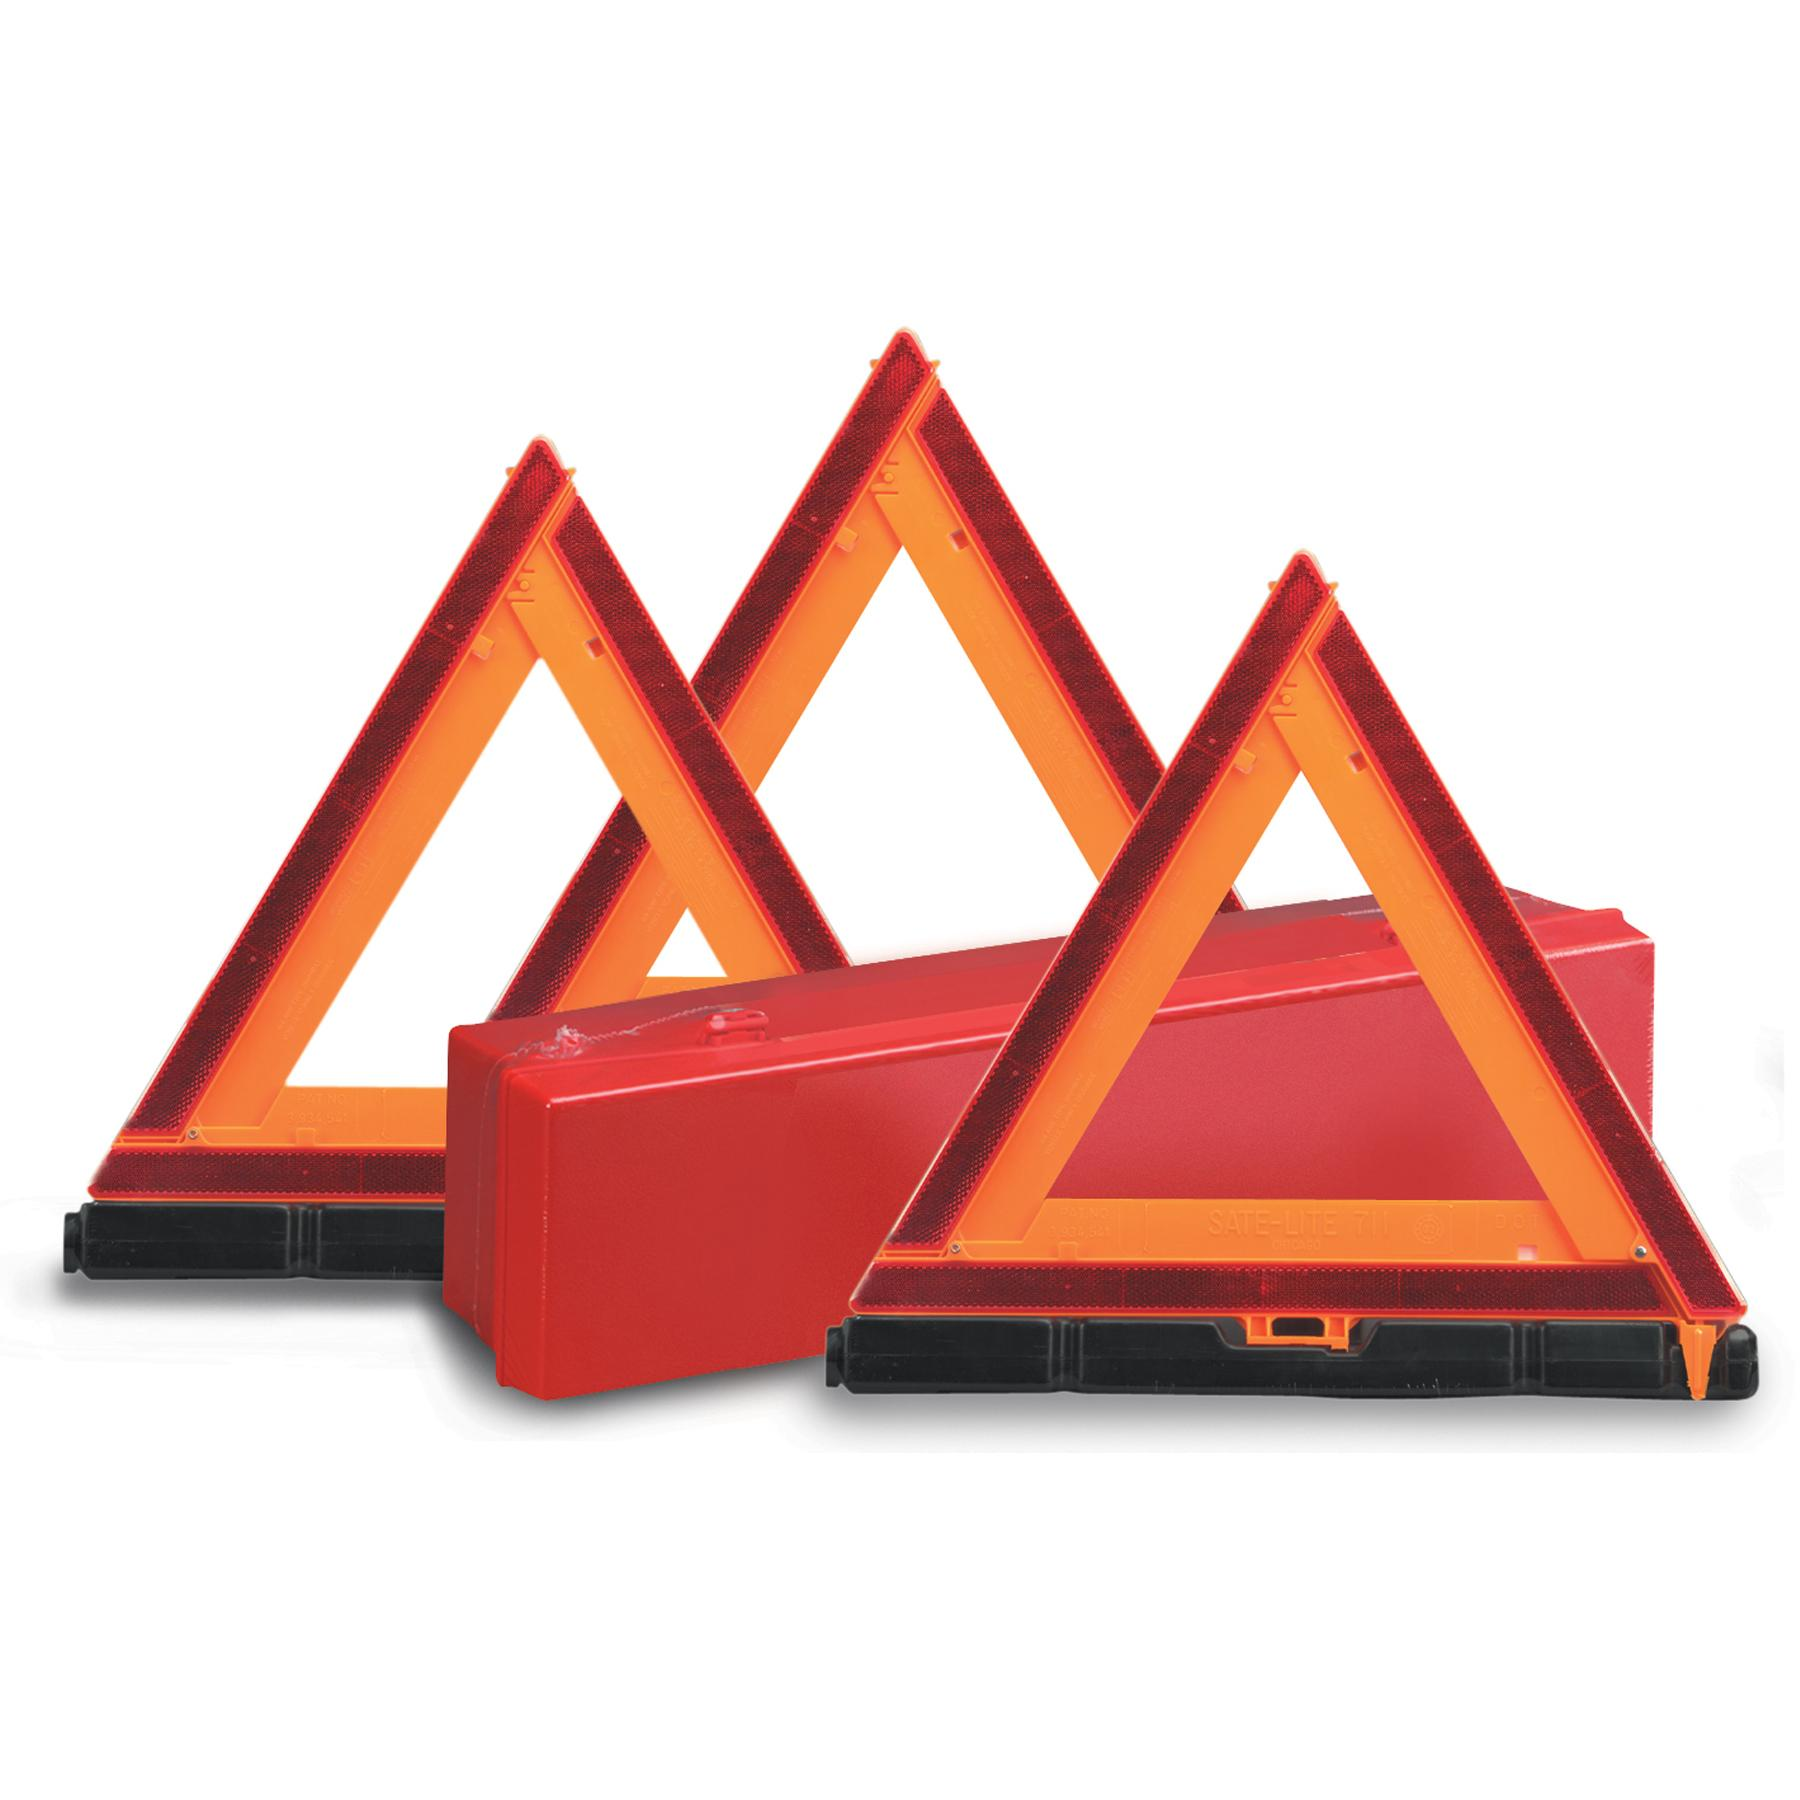 Tractor Reflective Triangles : Deflecto early warning road safety triangle kit